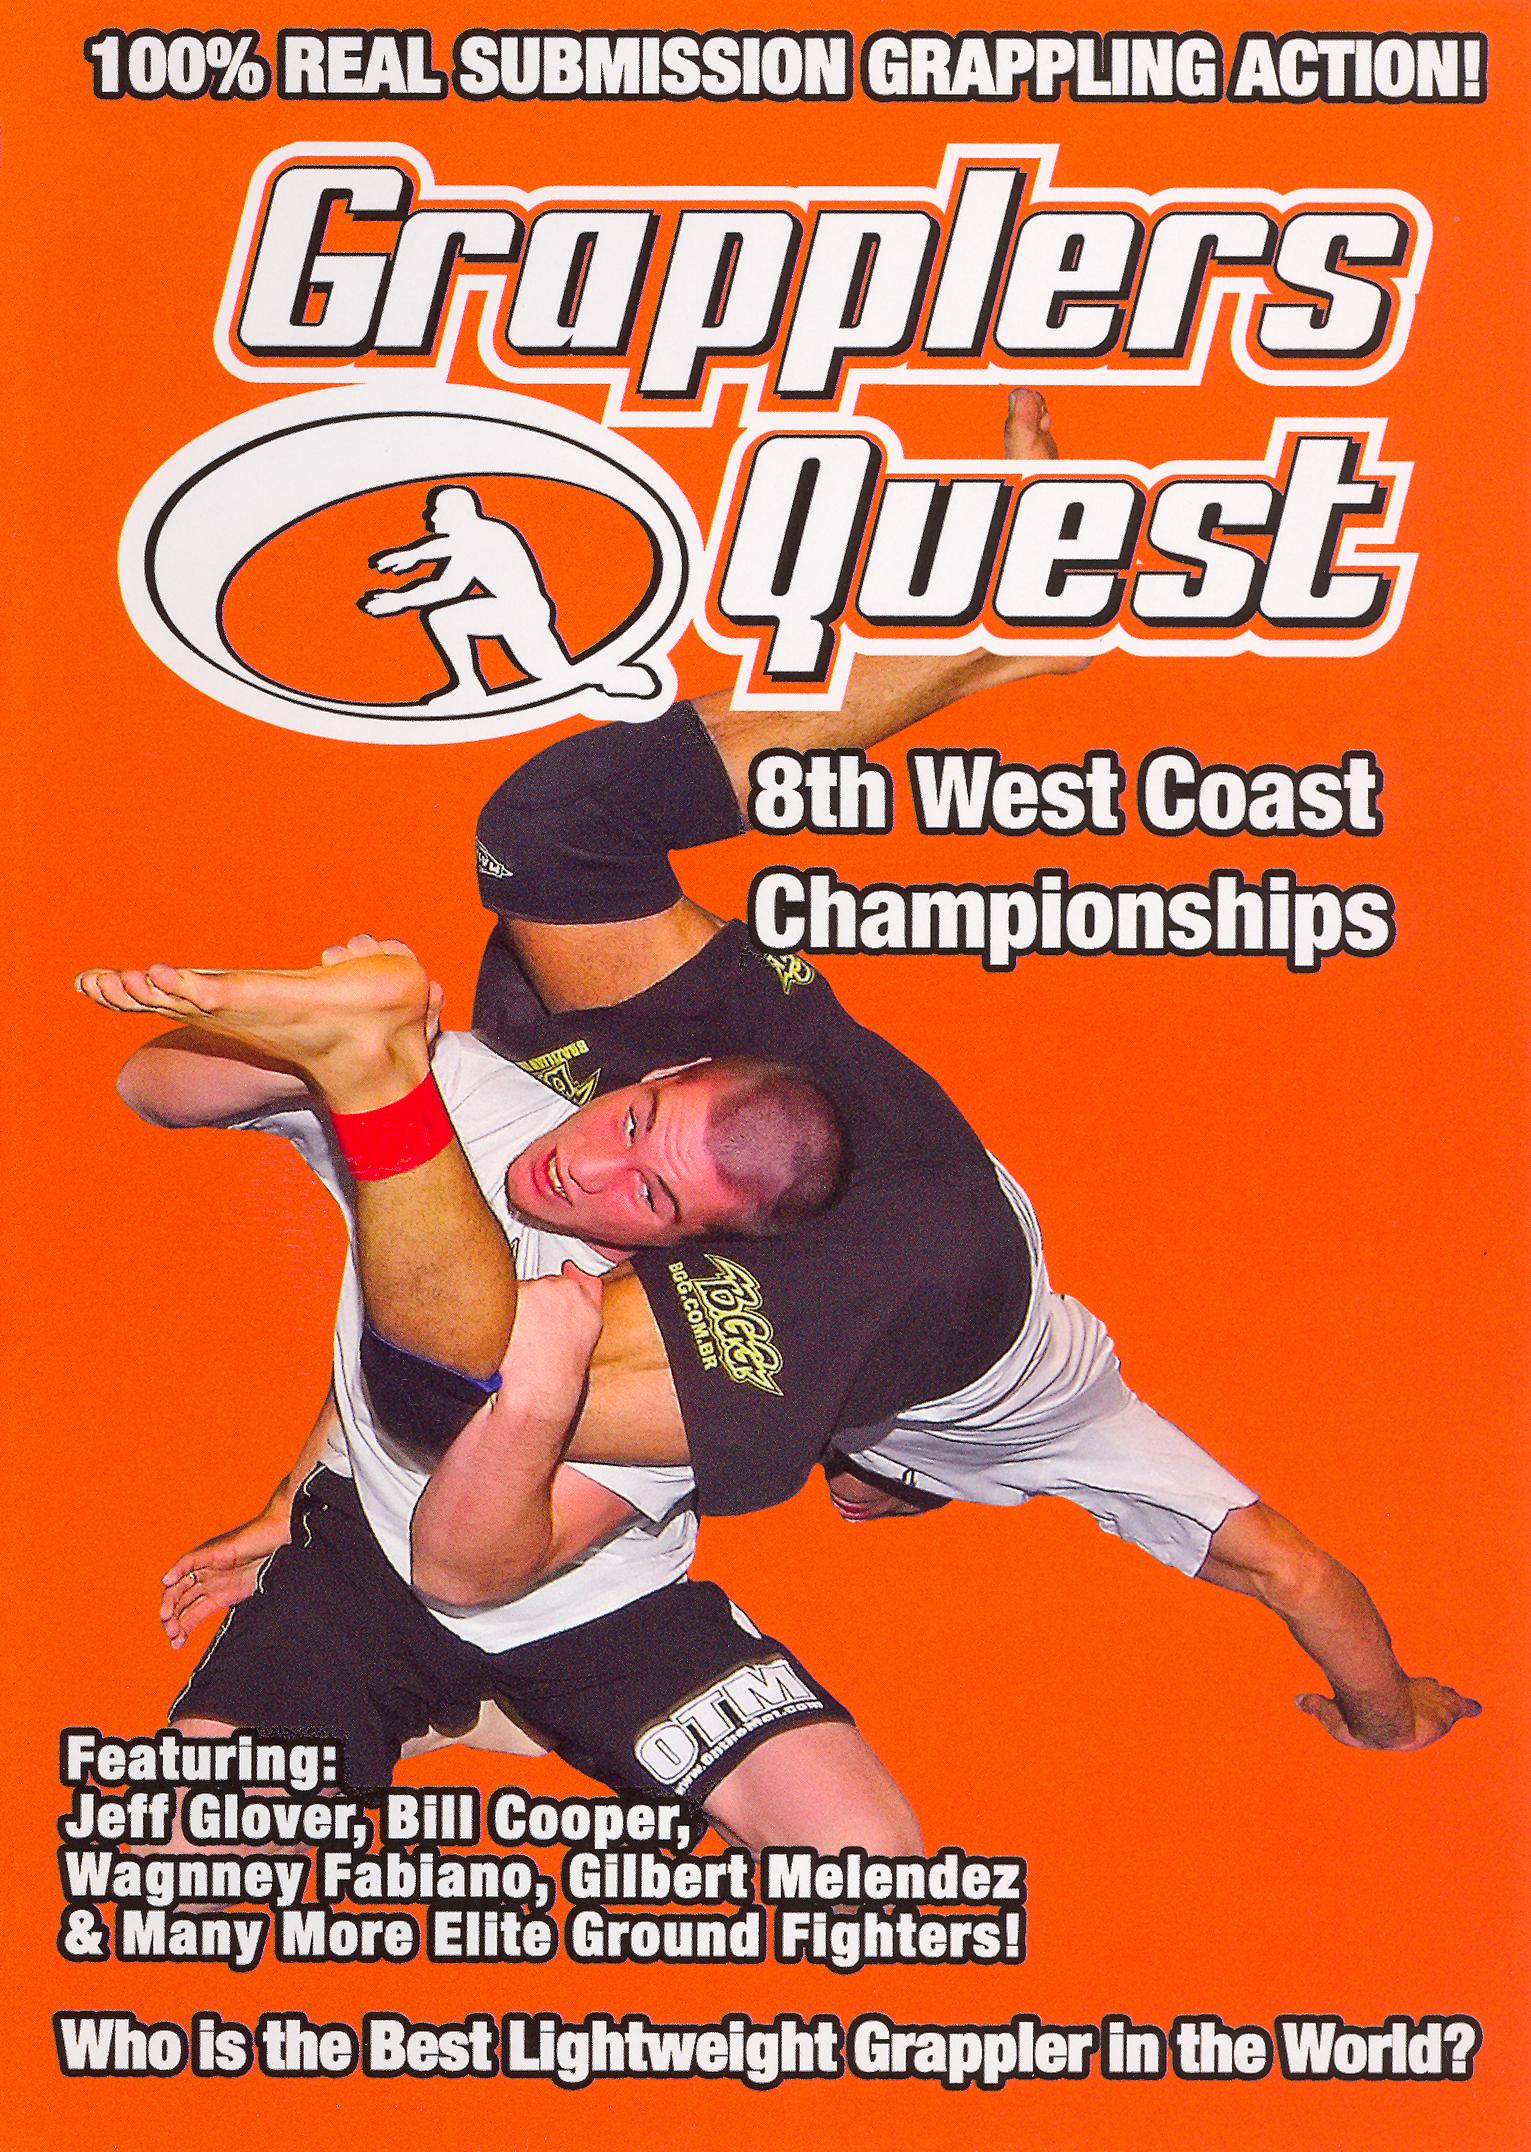 Grapplers Quest: 8th West Coast Championships